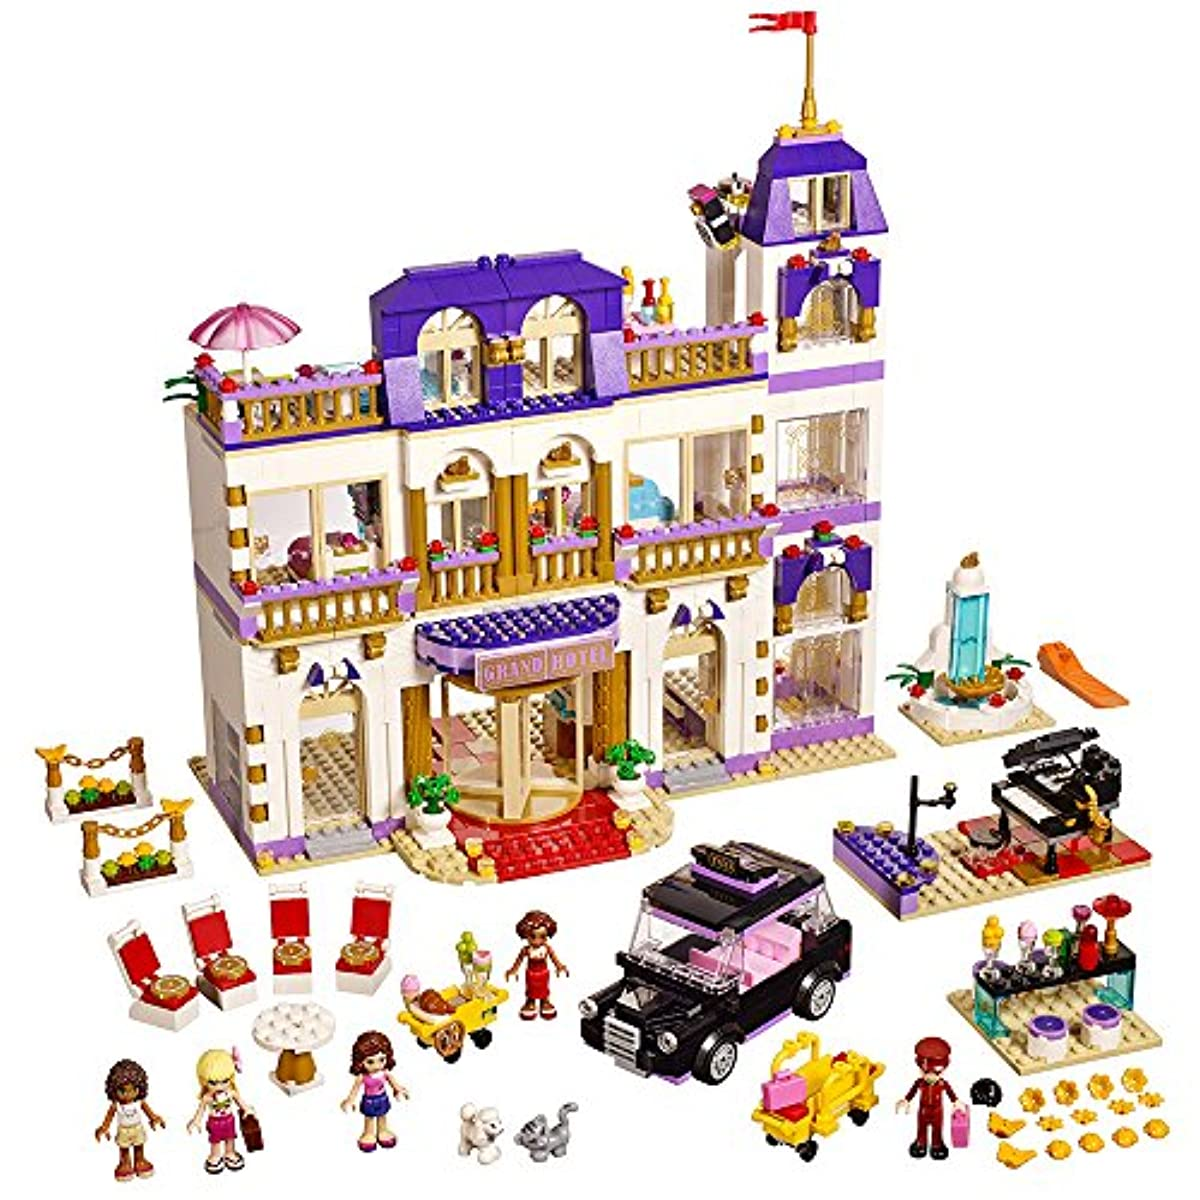 [레고 프렌즈] LEGO Friends Heartlake Grand Hotel 41101 Popular Kids Toy